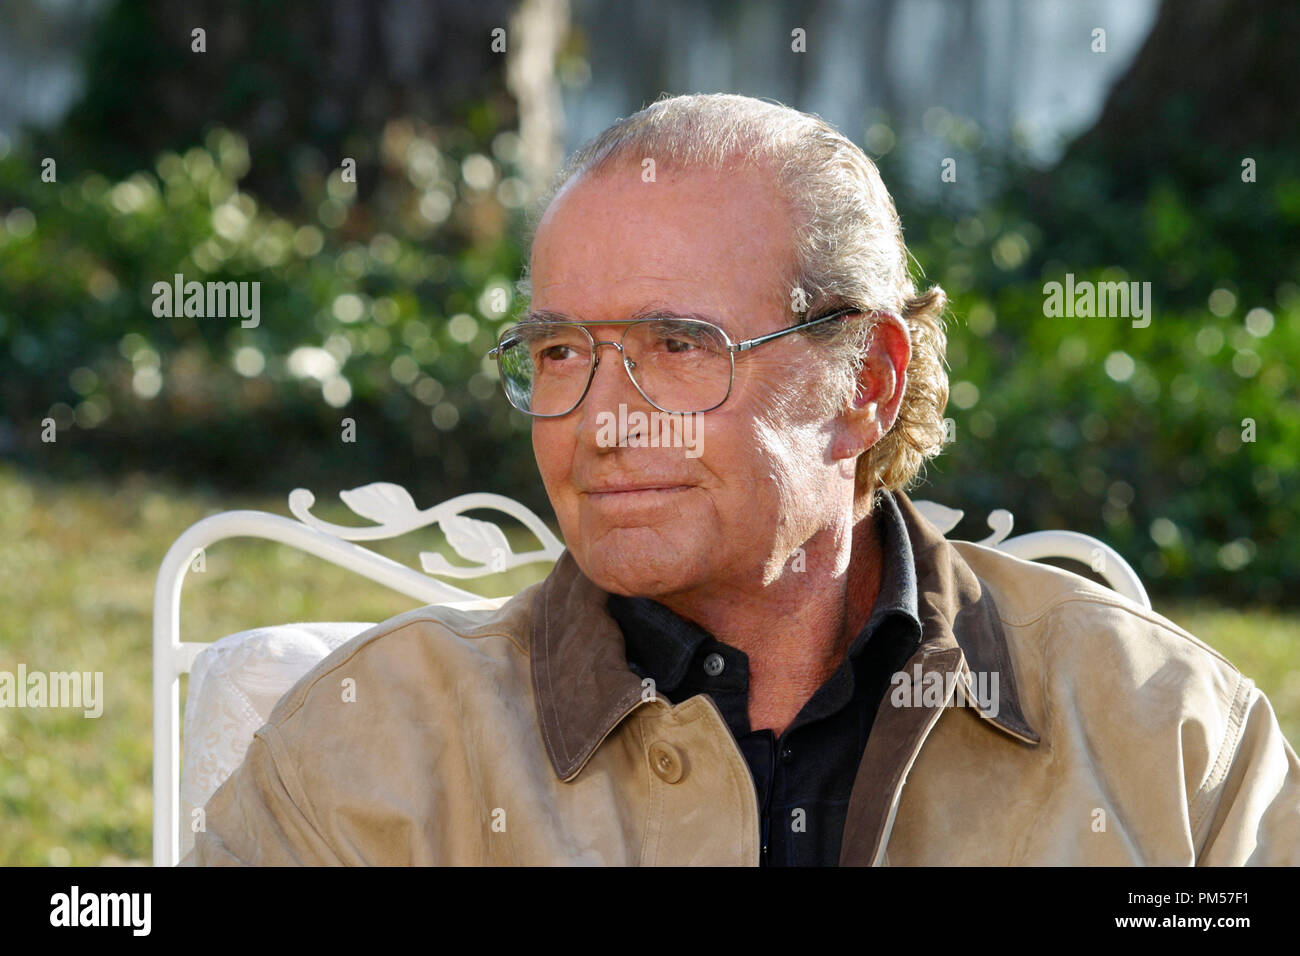 Studio Publicity Still from 'The Notebook' James Garner Photo credit: Melissa Moseley © 2004 New Line Cinema File Reference # 307351760THA  For Editorial Use Only -  All Rights Reserved - Stock Image